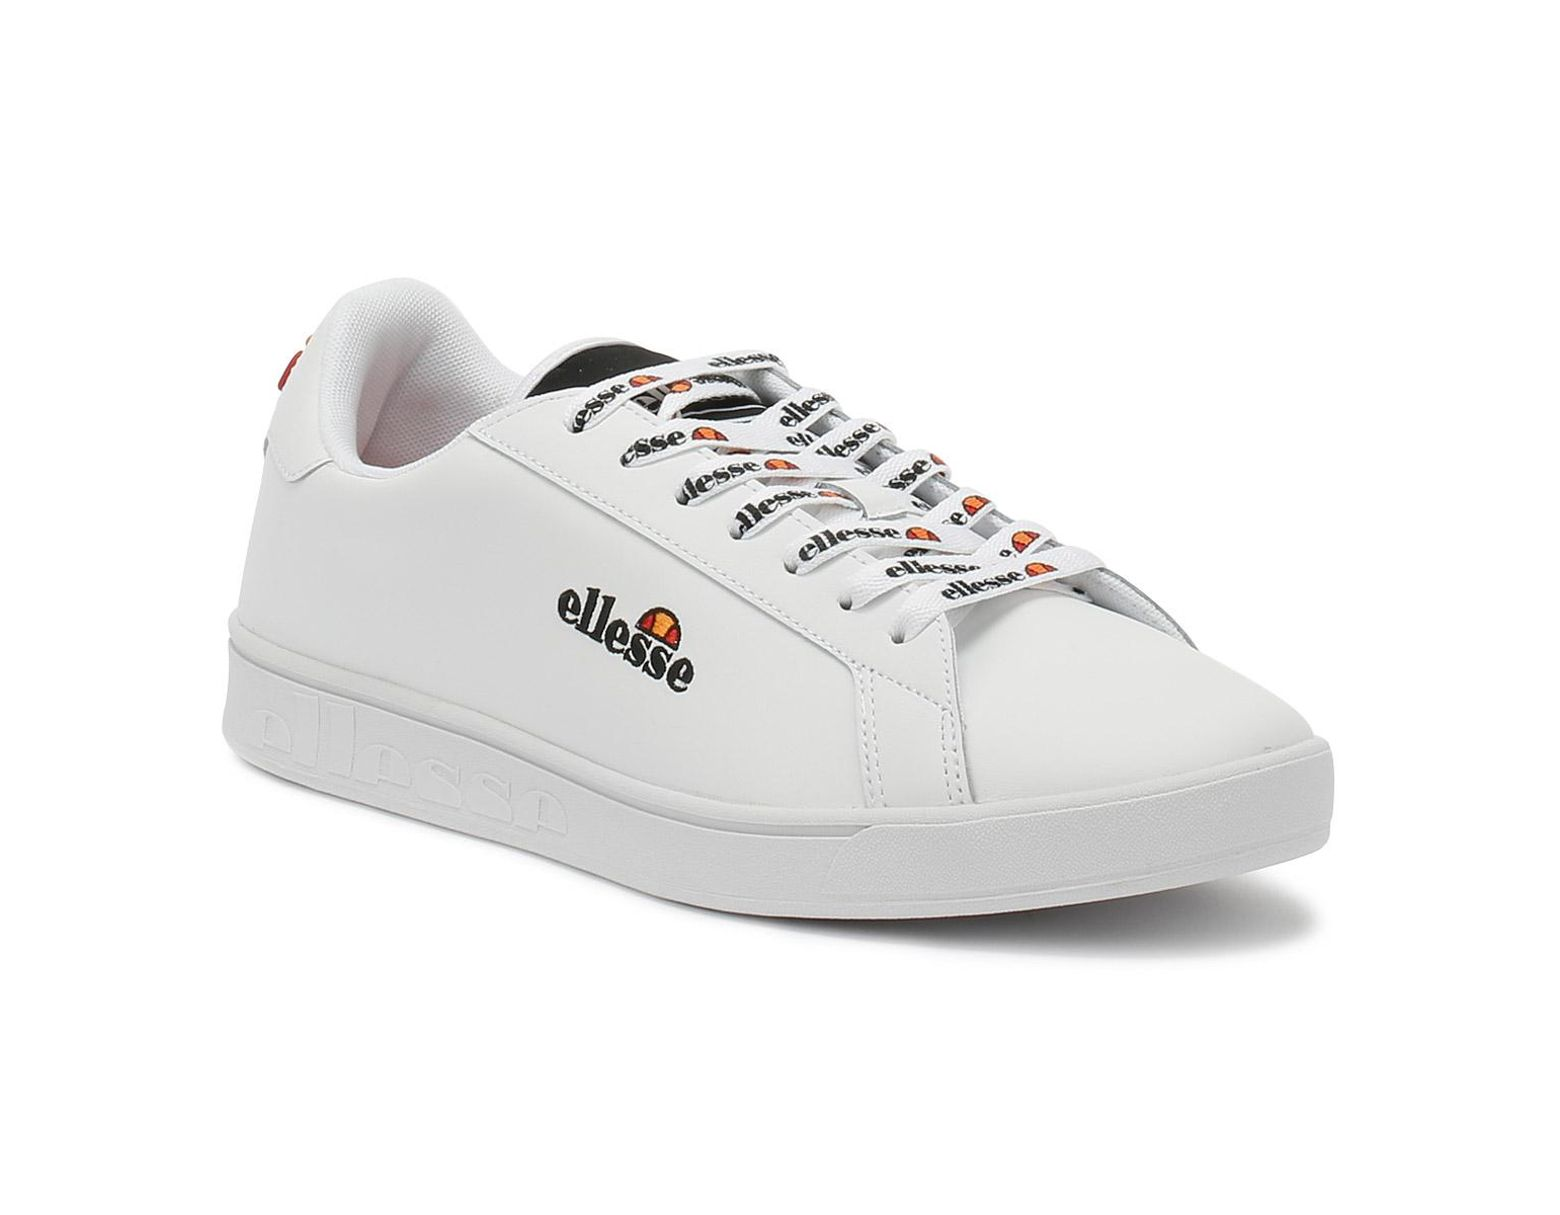 8a6a96af Campo Emb Womens White Sneakers